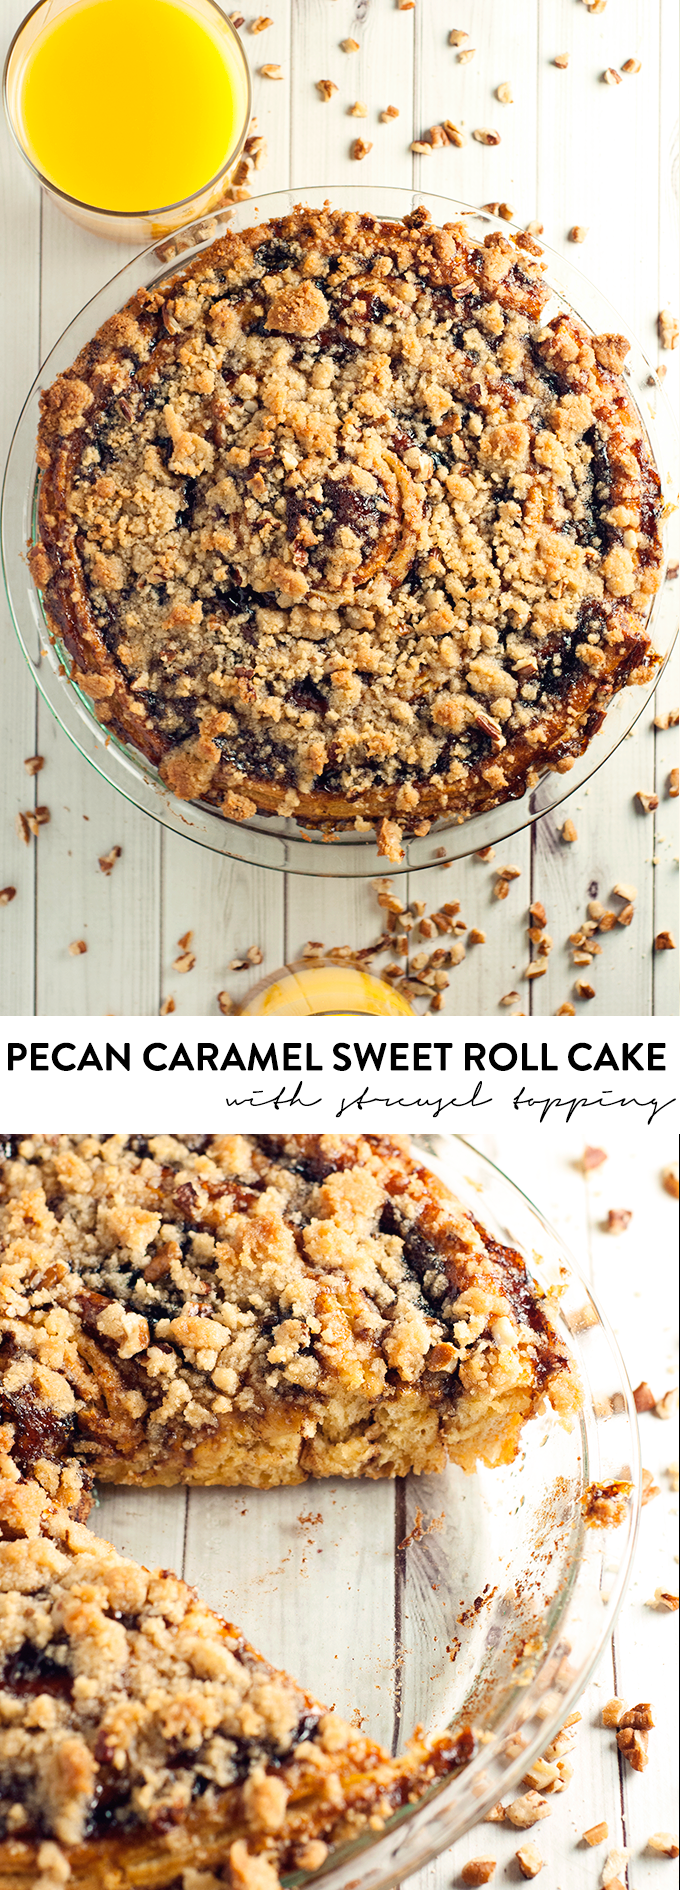 Breakfast just got a whole lot better with this amazing Pecan Caramel Sweet Roll Cake with Streusel Topping!